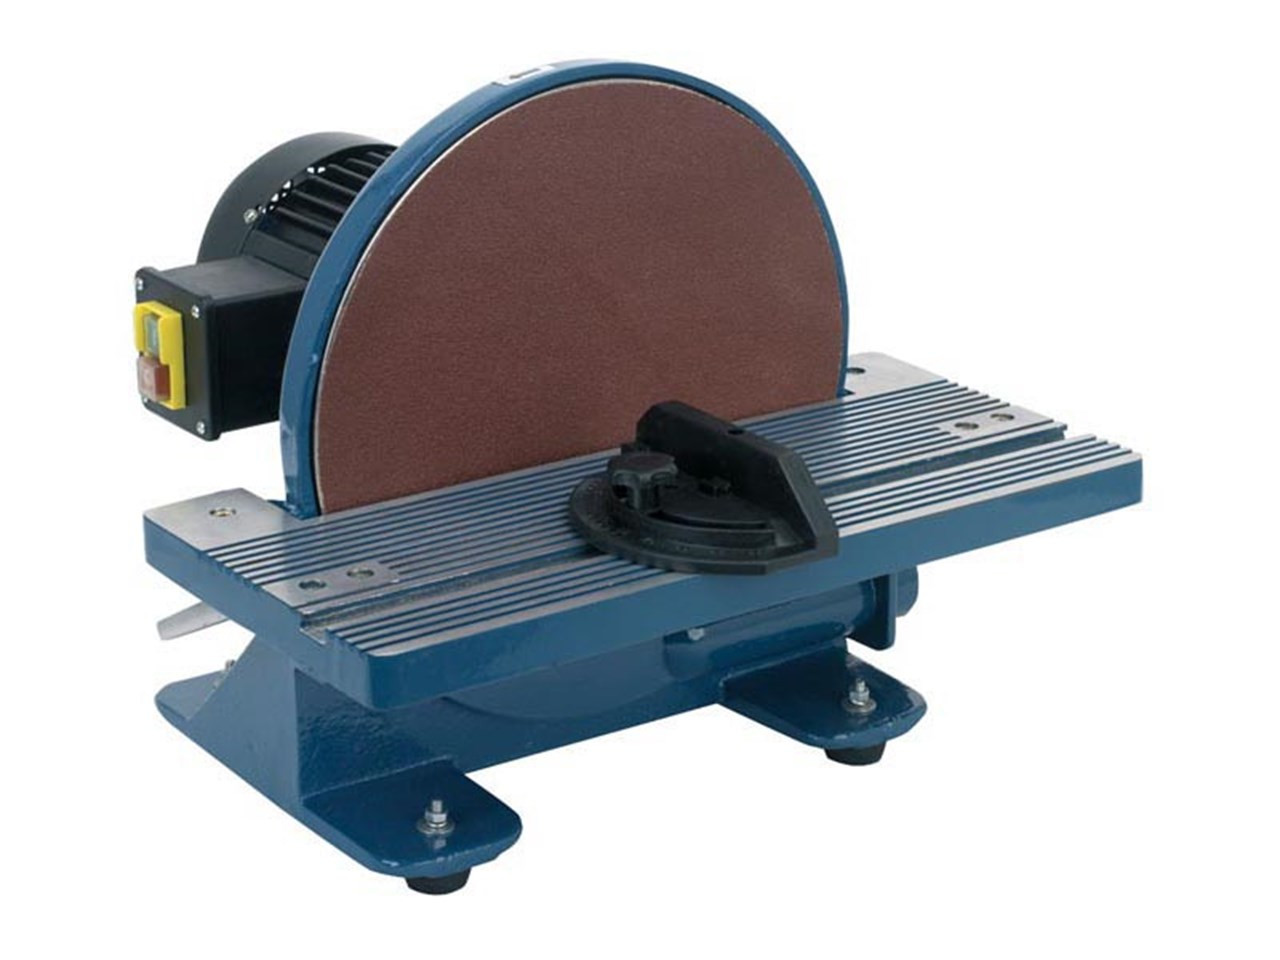 Sealey Sm31 Disc Sander Bench Mounting 305mm 750w 230v